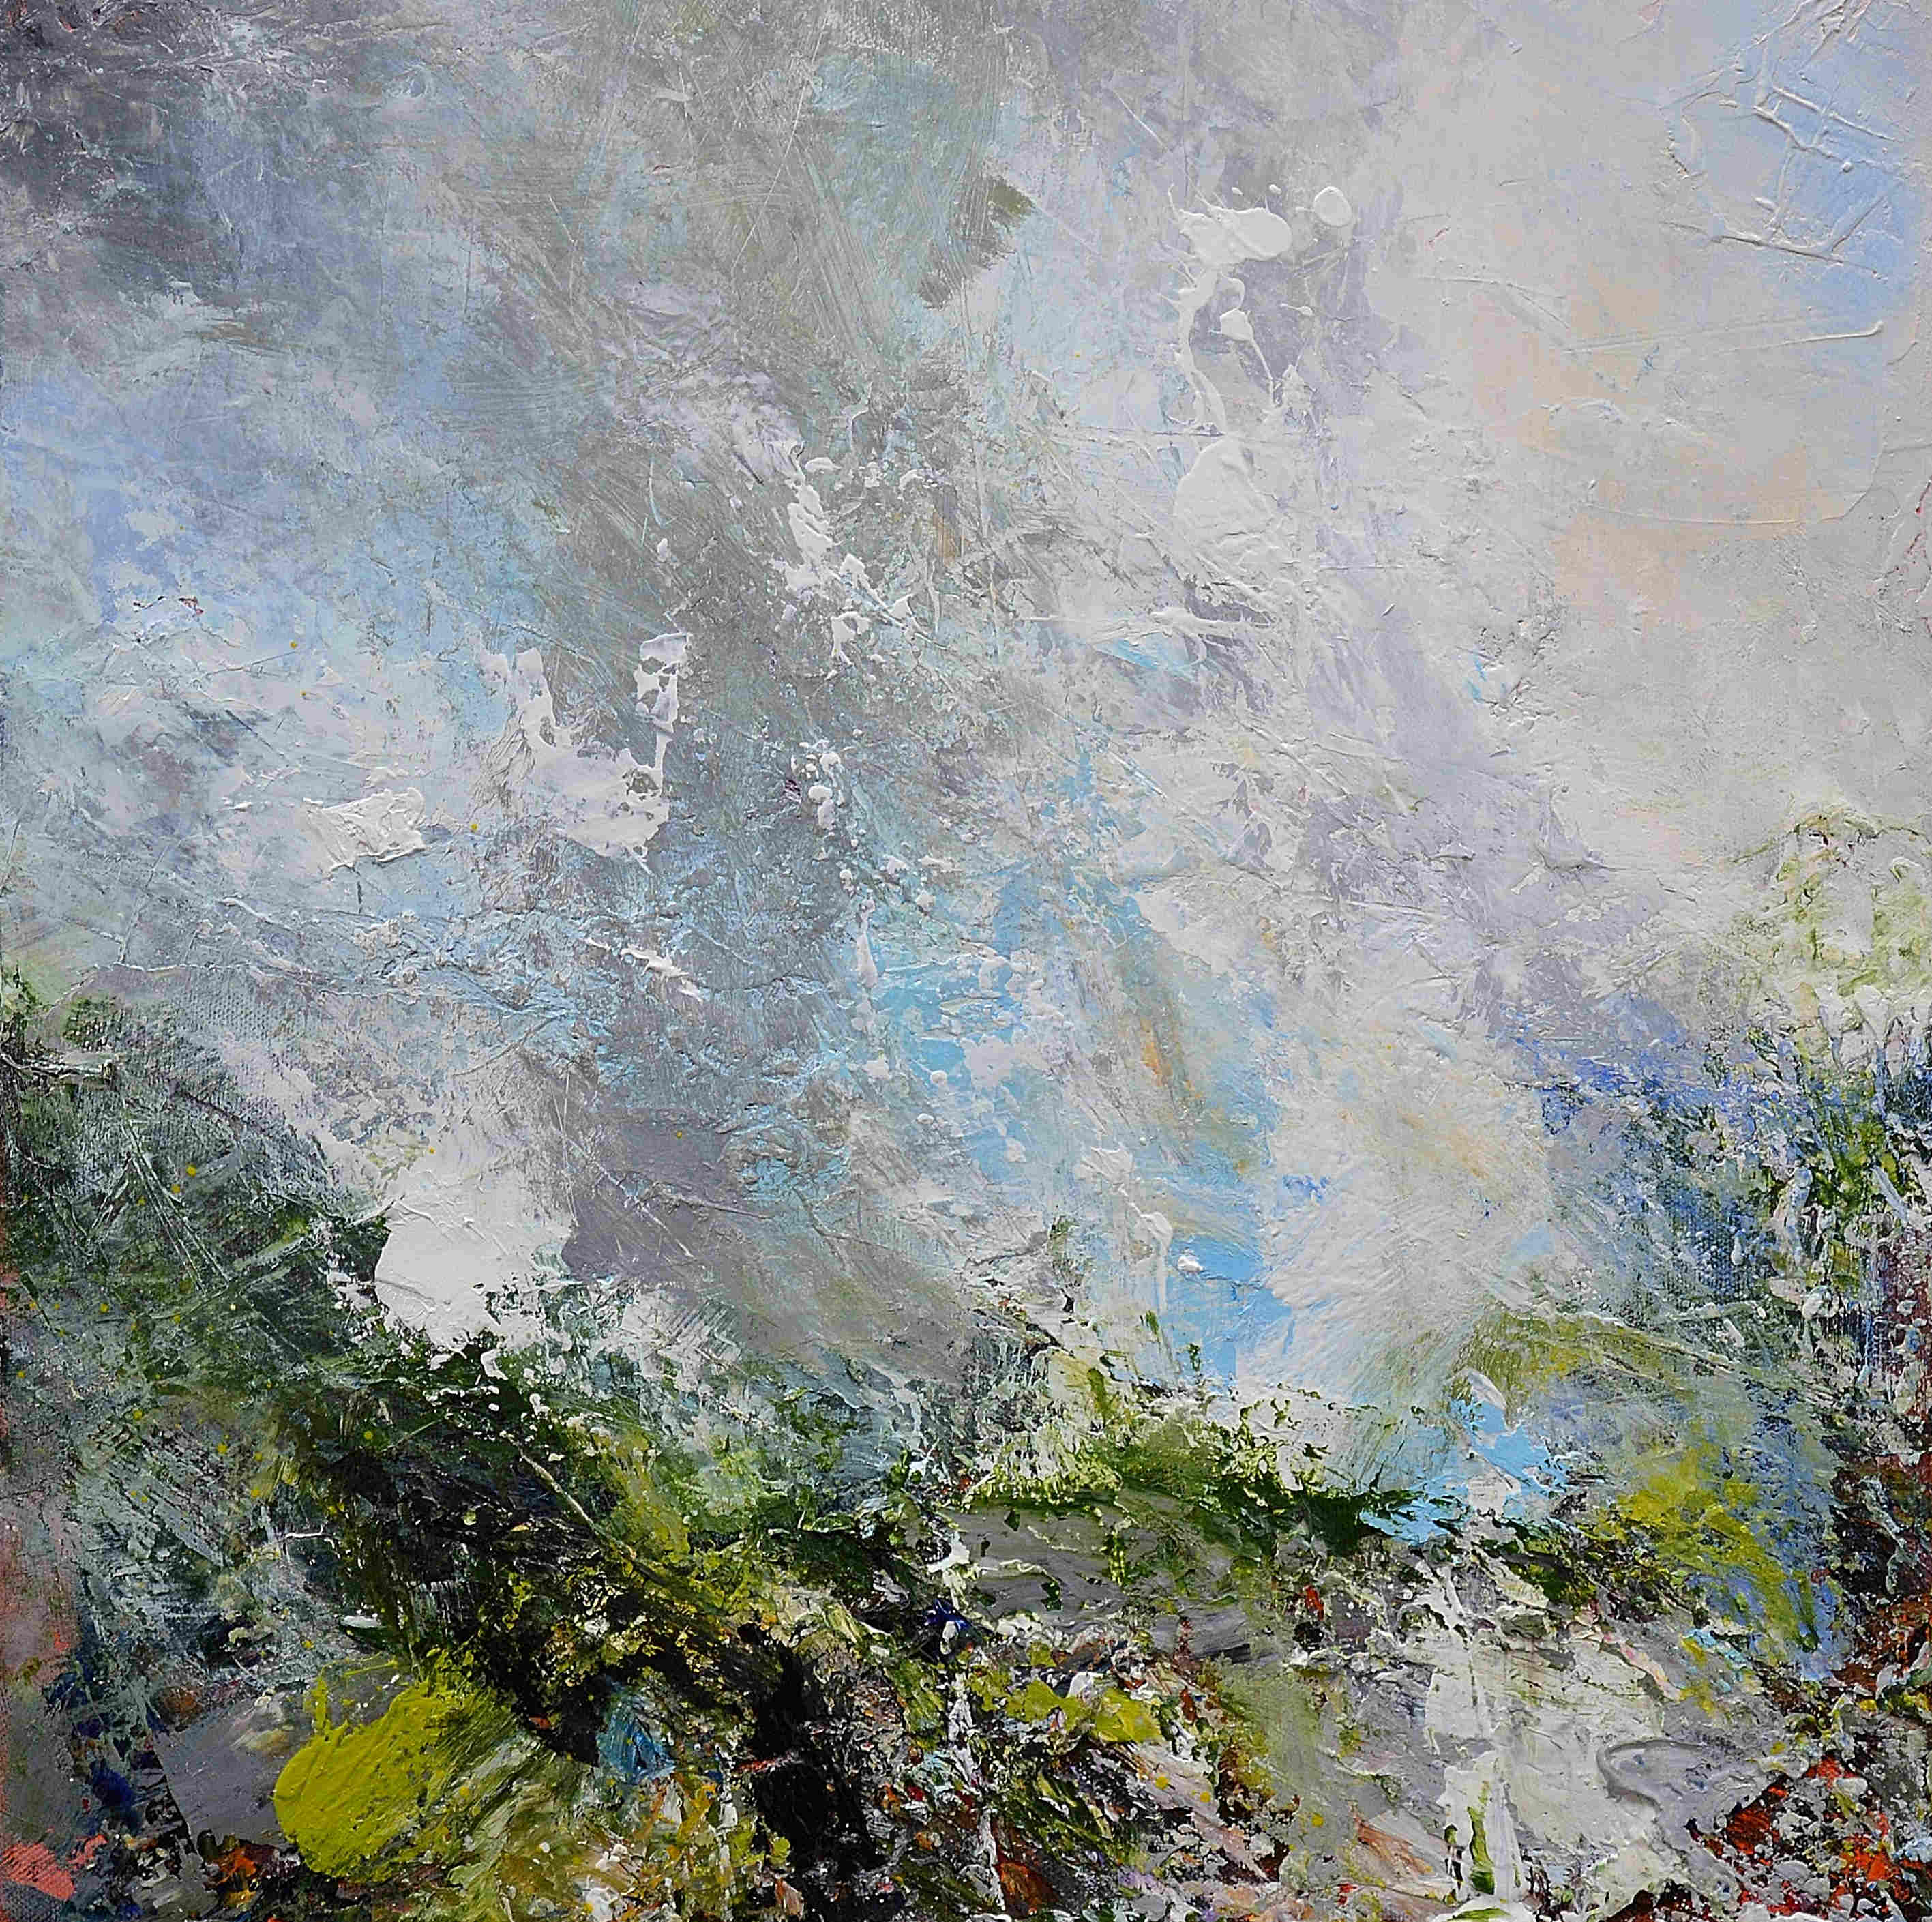 'Heavy Ground, Clearing Sky' by artist Matthew Bourne